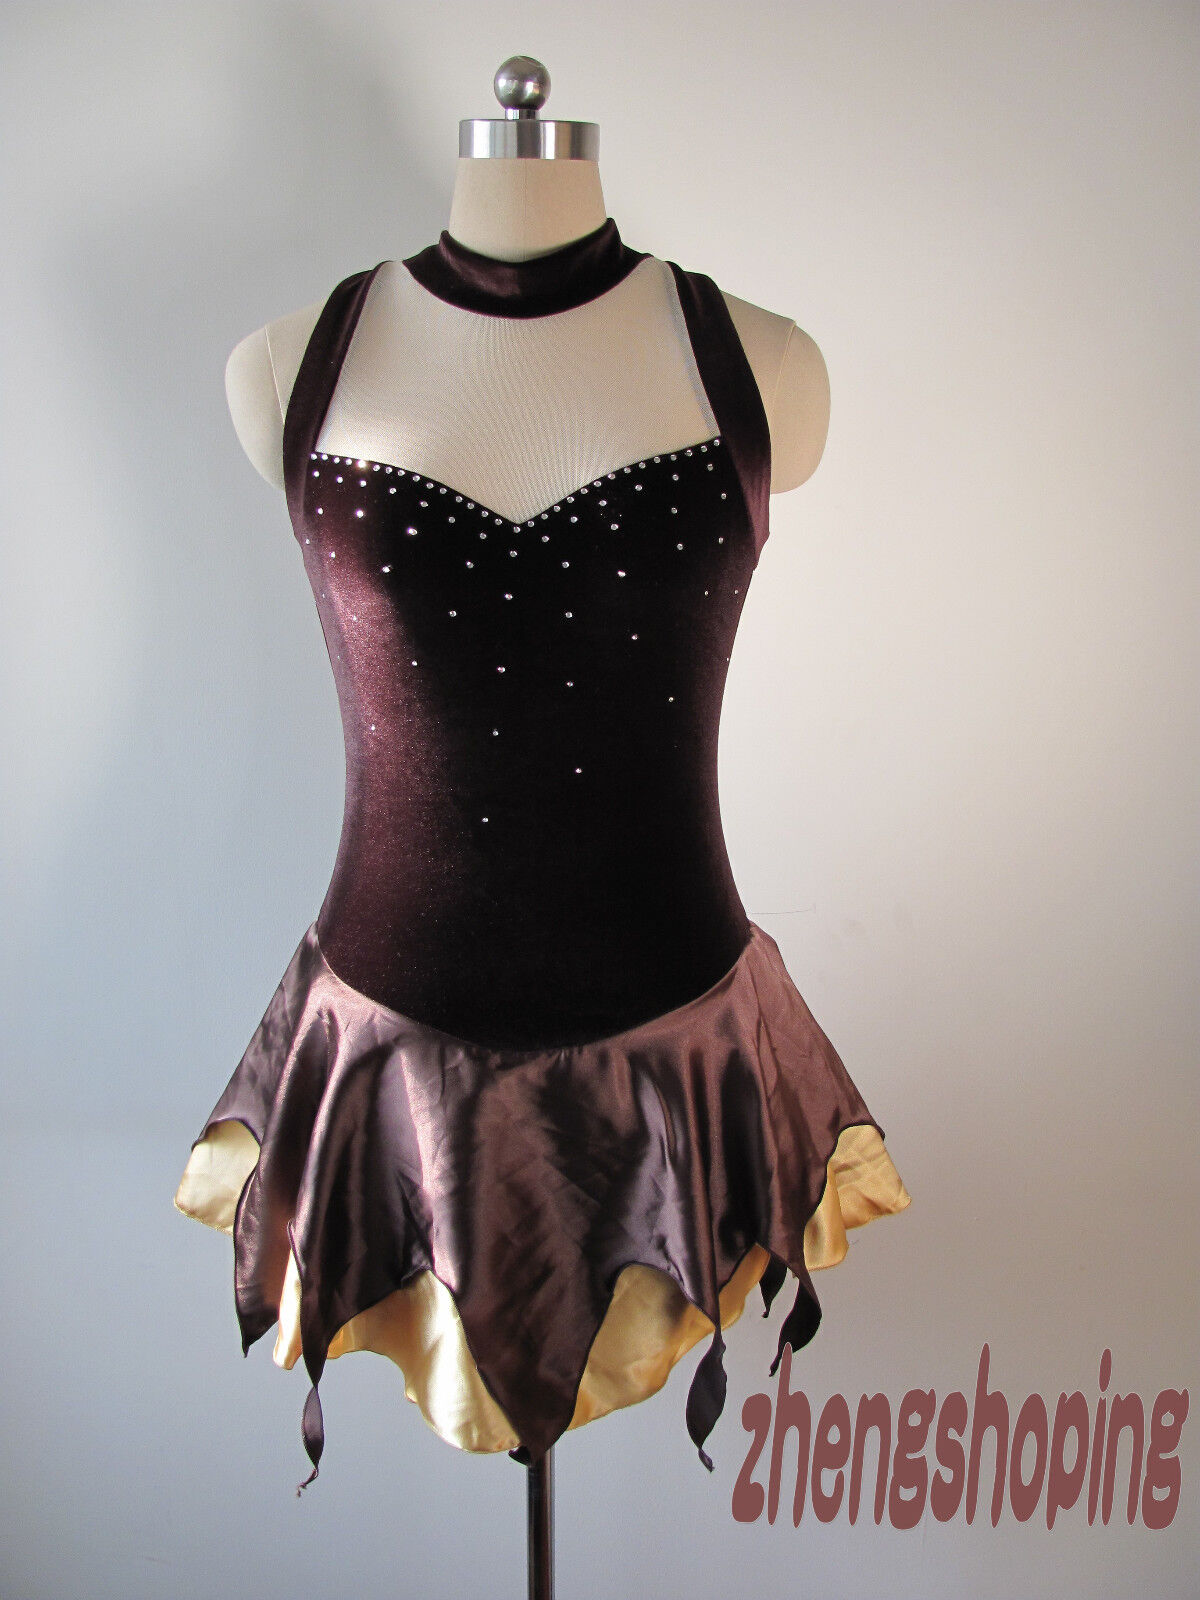 New Ice Skating Dress Competition  Twirling  Figure Costume 8013  100% price guarantee